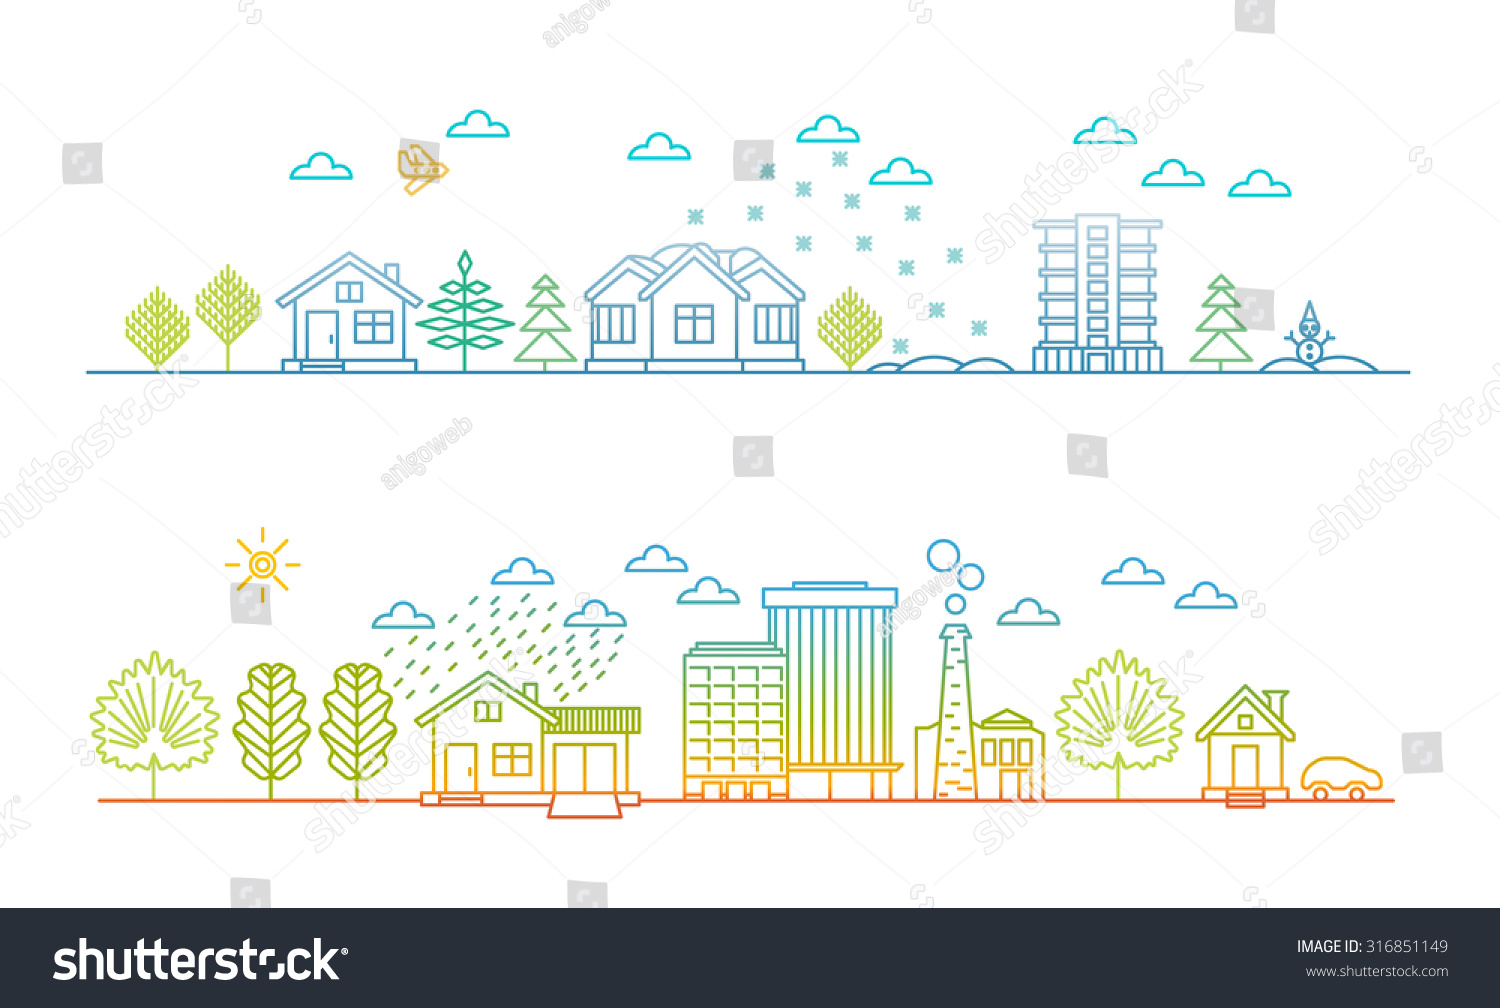 Linear style city illustration cityscape at Christmas and in summer day